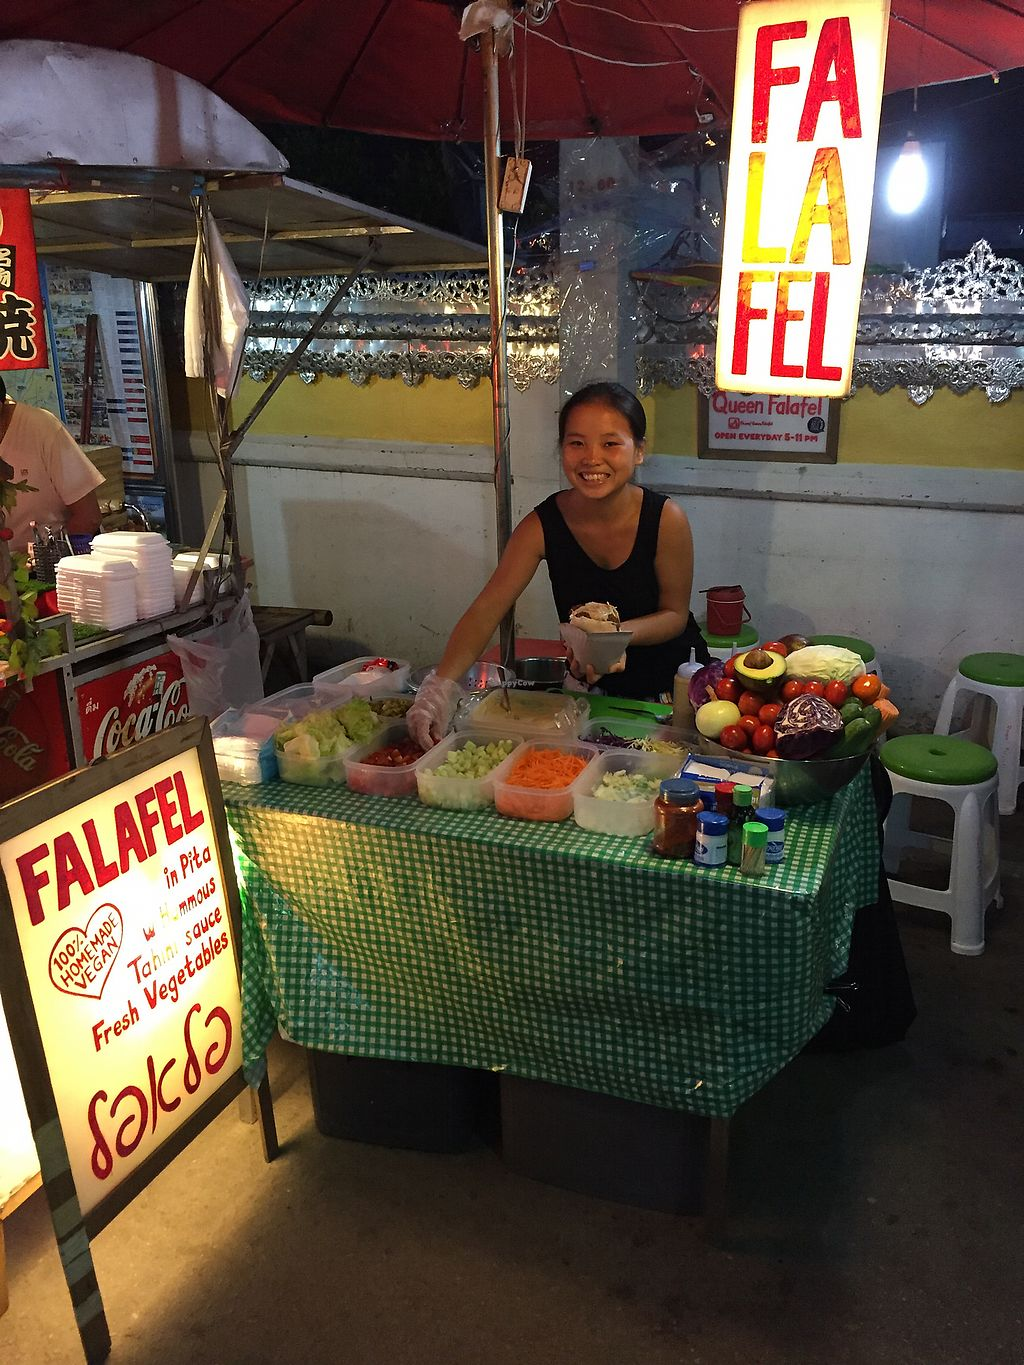 """Photo of Queen Falafel Food Cart  by <a href=""""/members/profile/mattieben"""">mattieben</a> <br/>The place to be! <br/> August 14, 2017  - <a href='/contact/abuse/image/90954/292654'>Report</a>"""